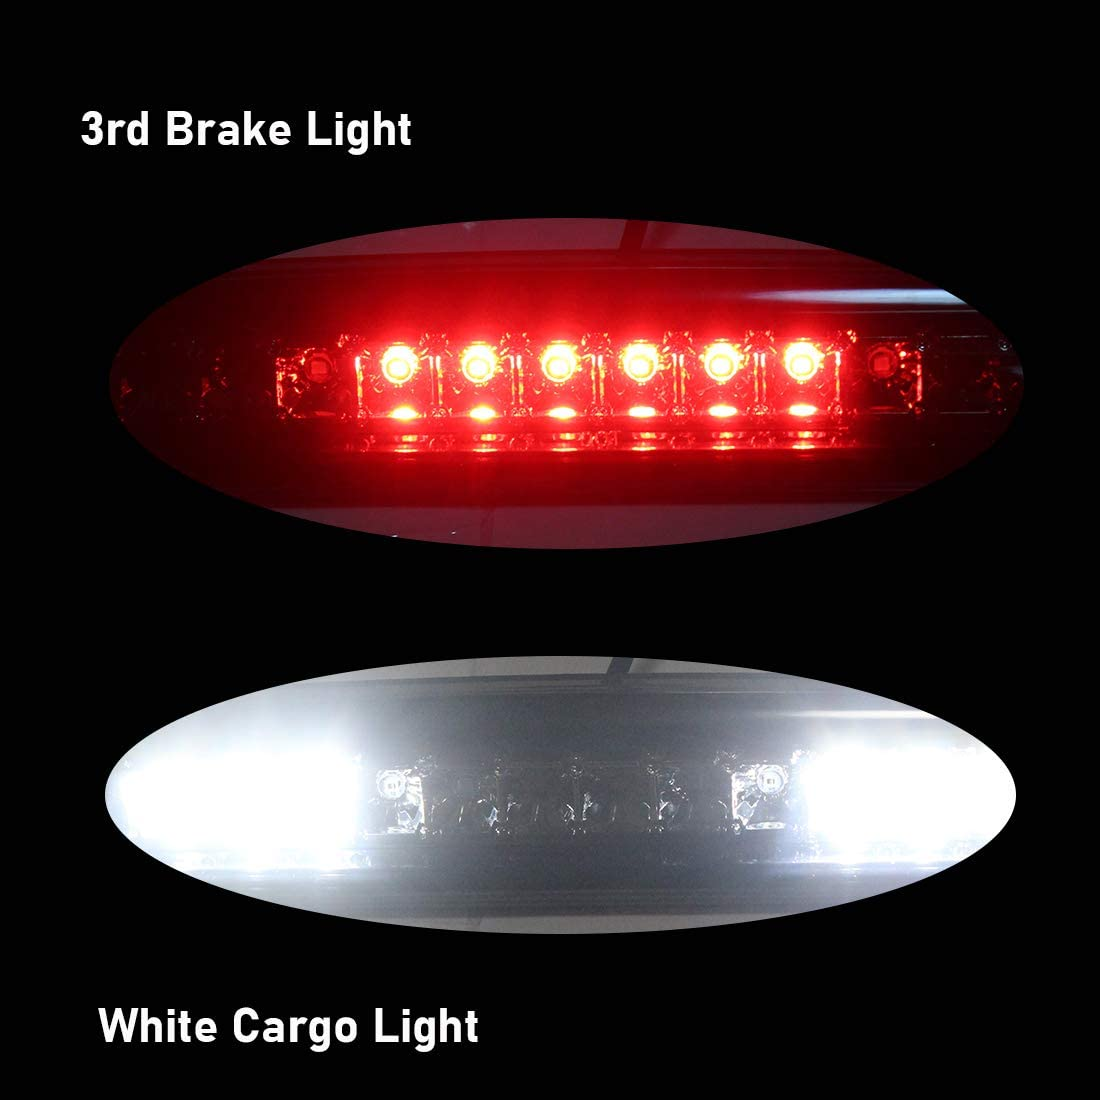 NPAUTO LED Third 3rd Brake Light Cargo Lamp Replacement for 1994-2001 Dodge Ram 1500 2500 3500 High Mount Stop Light Assembly